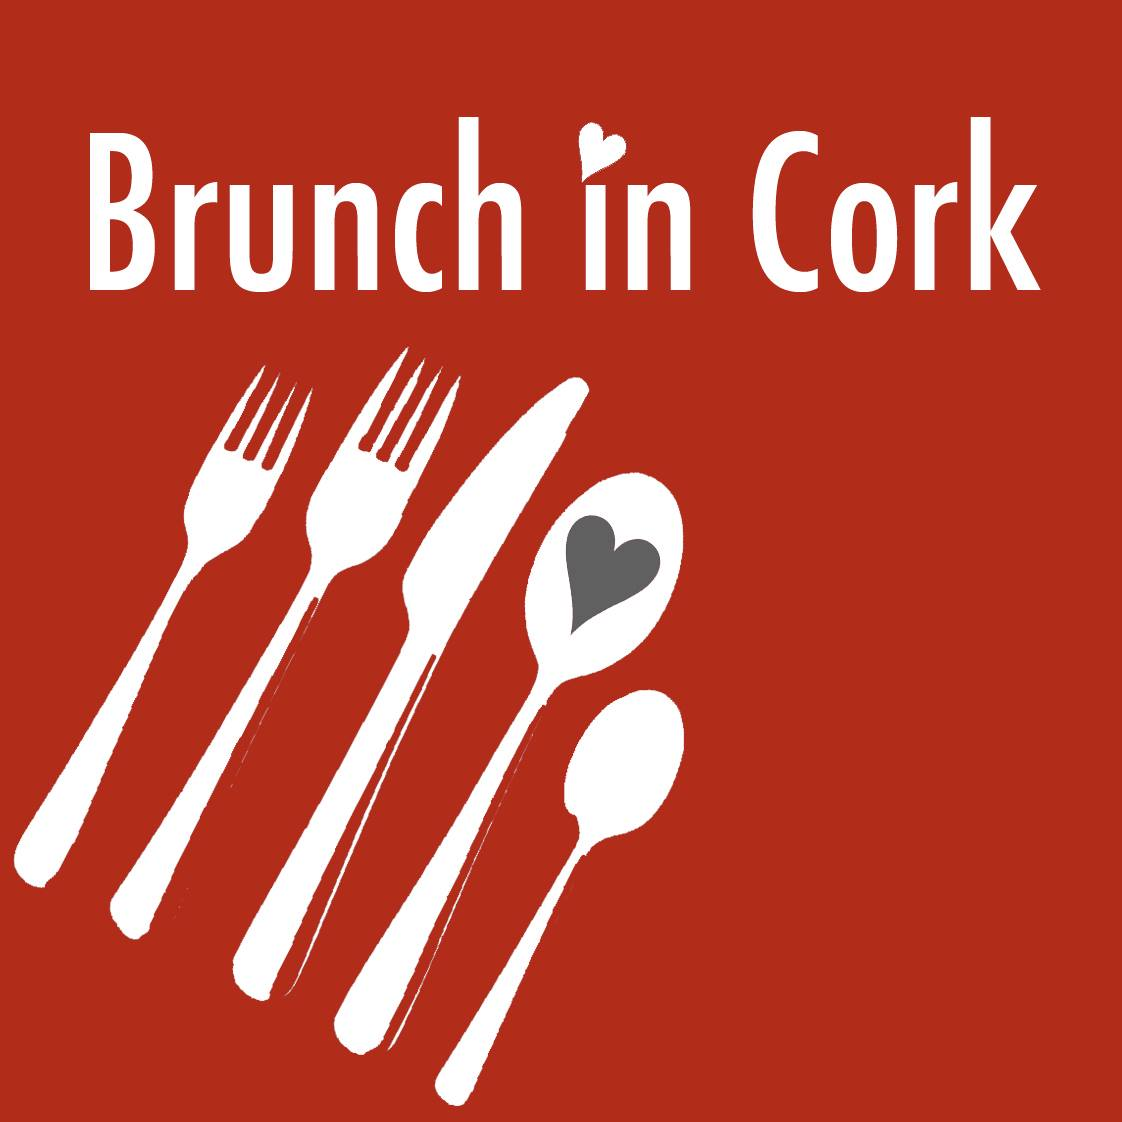 BrunchCork on Twitter